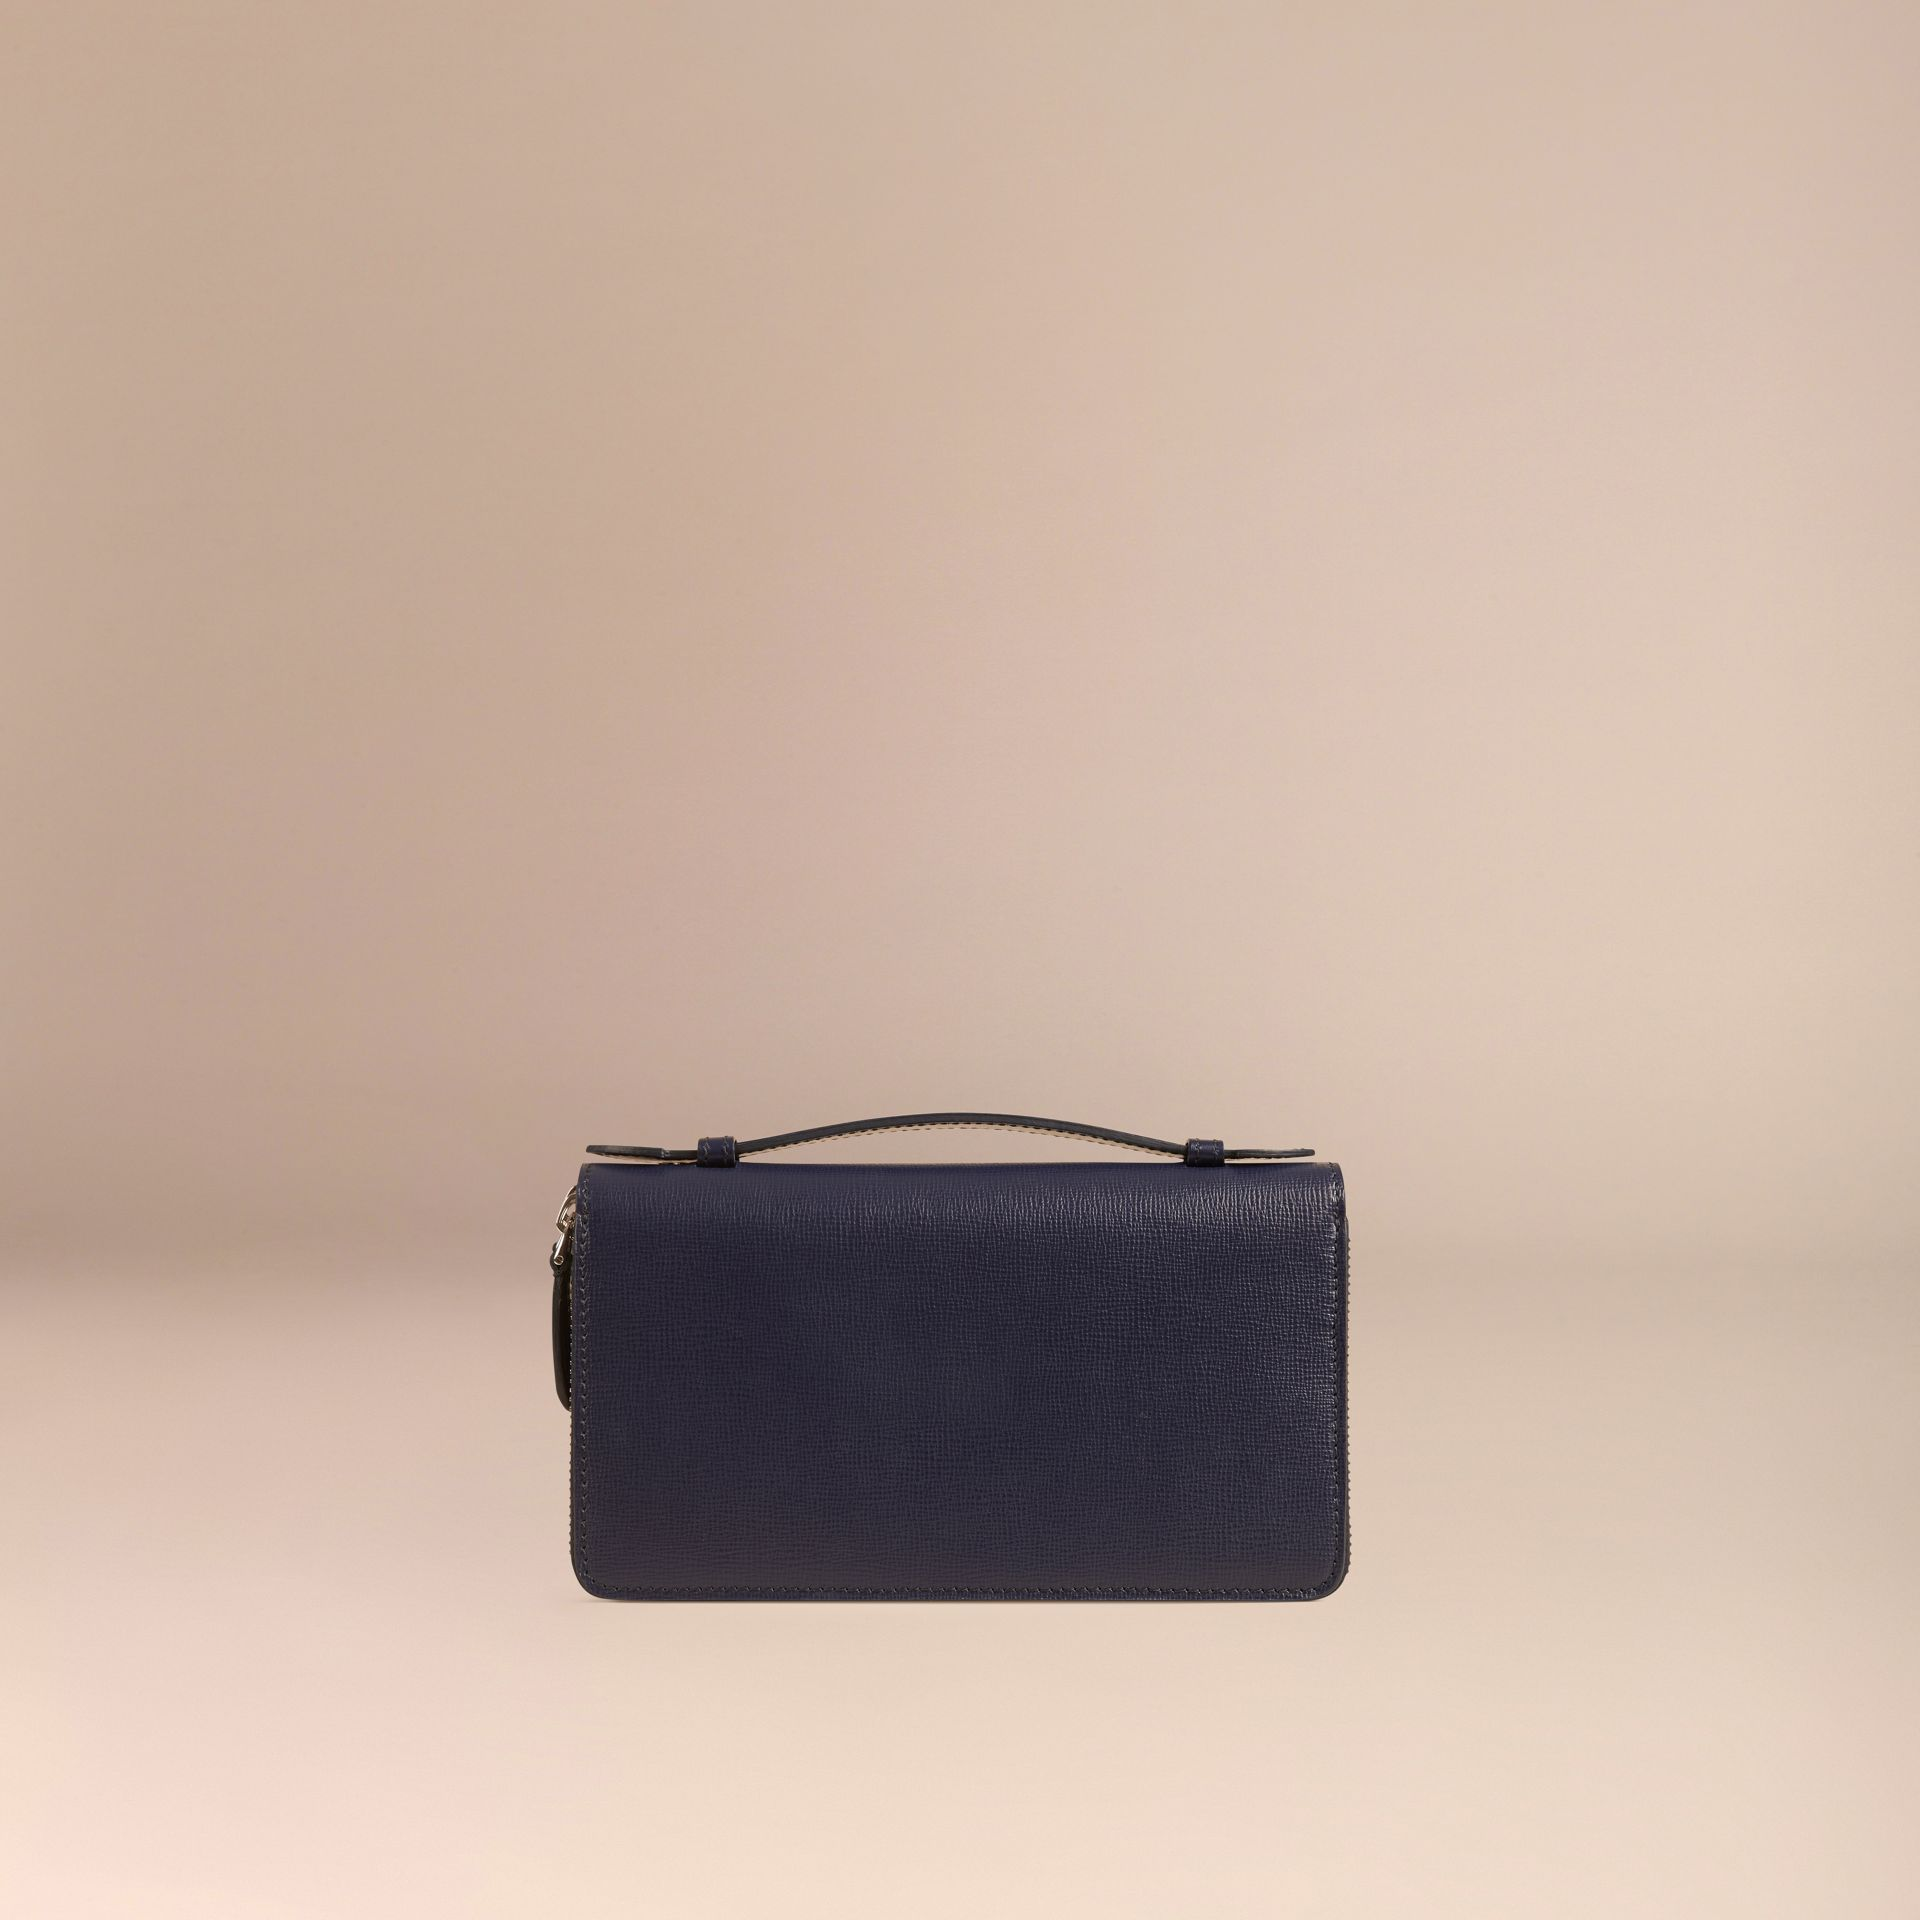 Dark navy London Leather Travel Wallet Dark Navy - gallery image 4